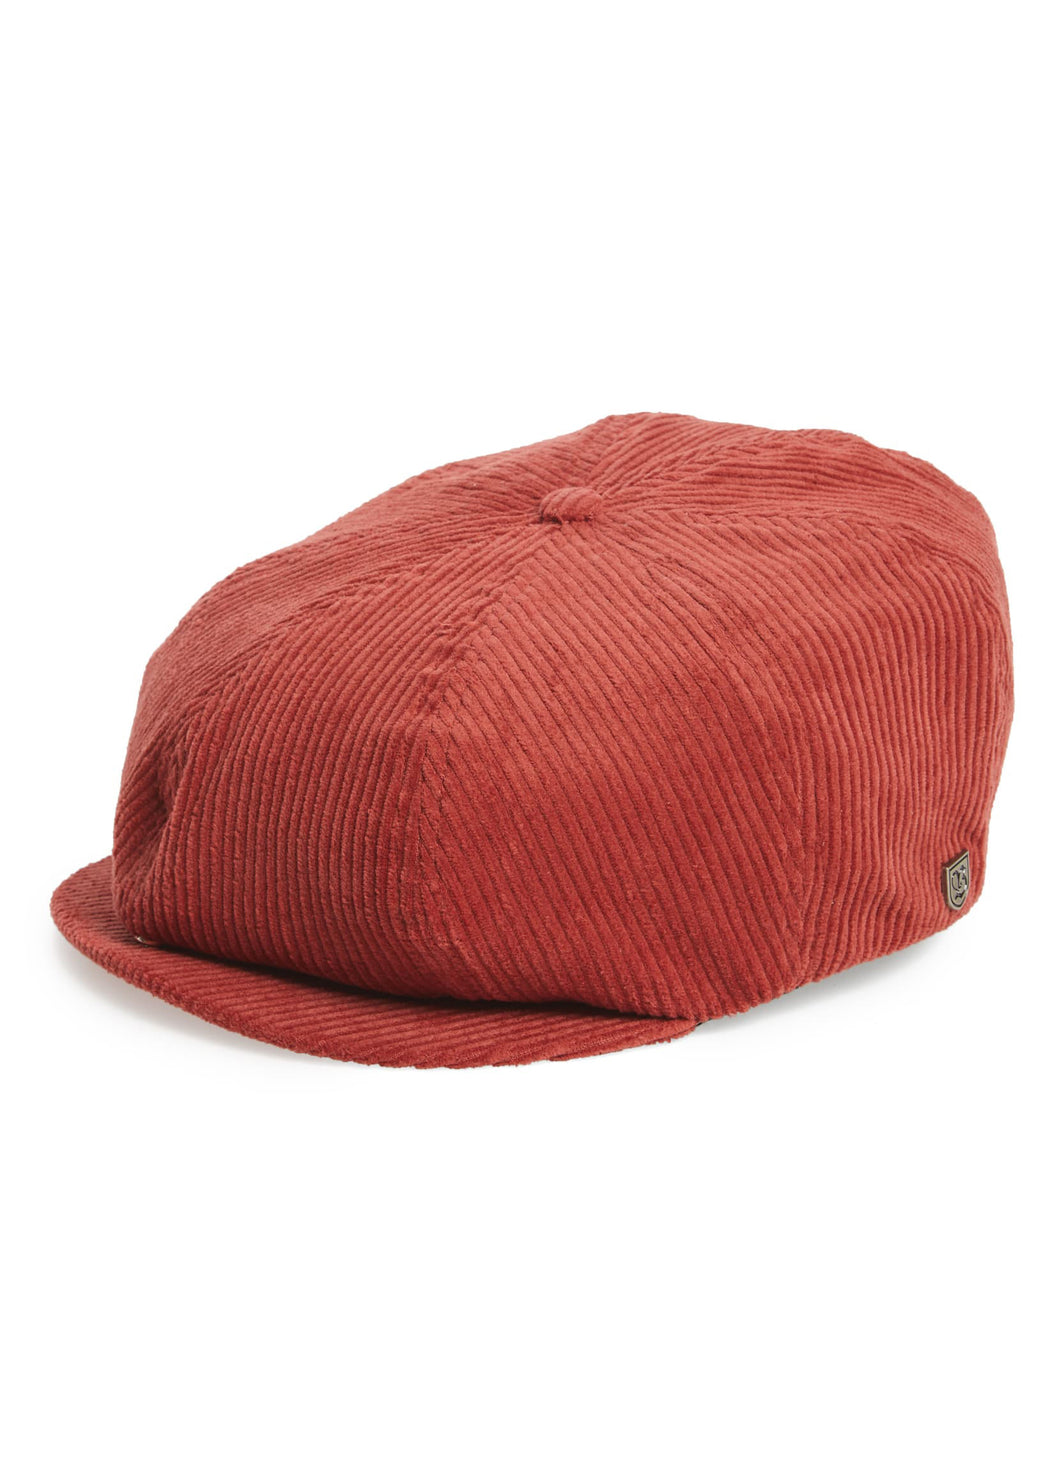 Brood Snap Cap - Tigertree